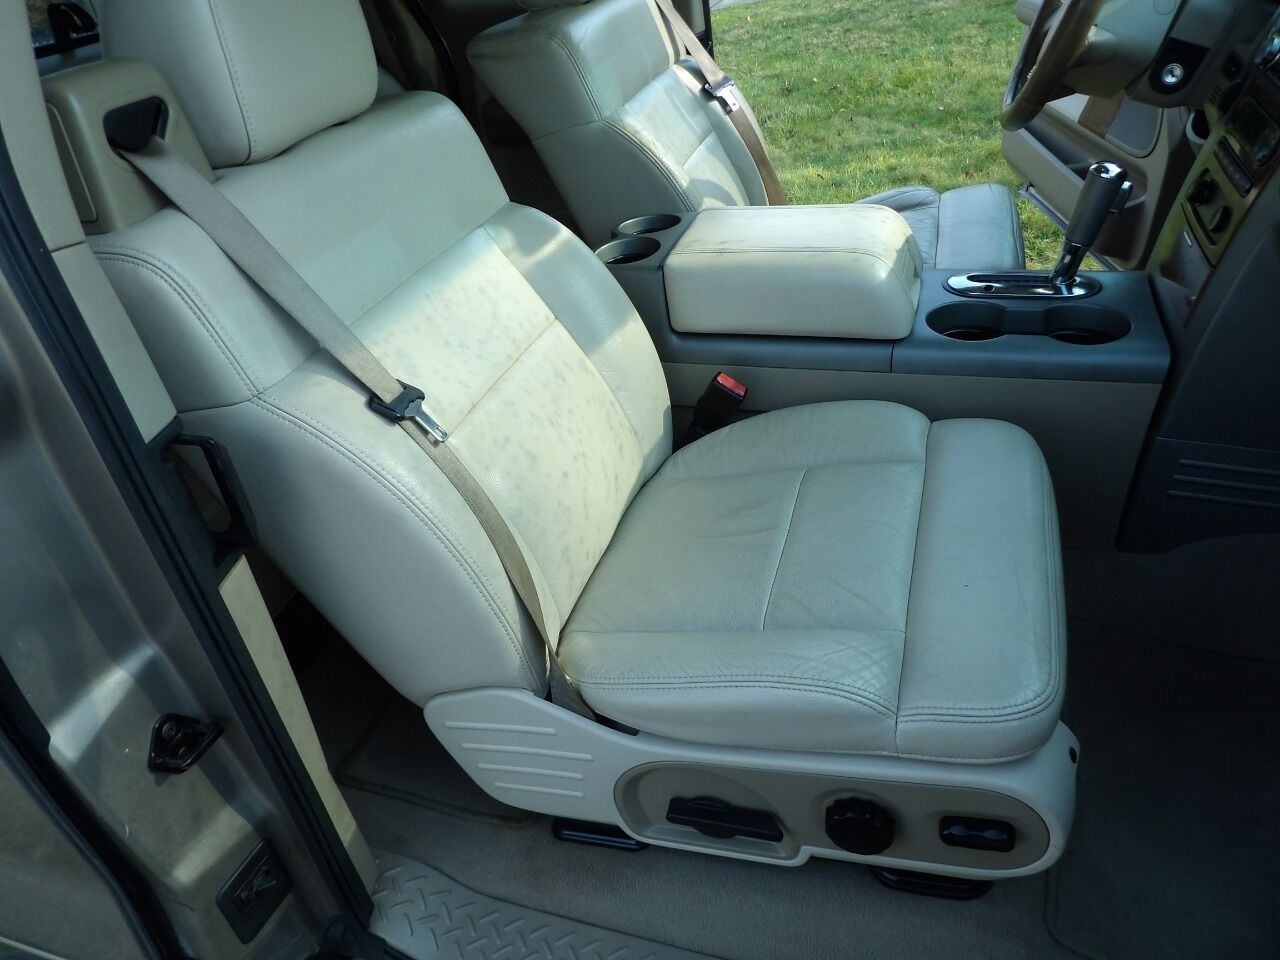 2004 Ford F-150 Short Bed